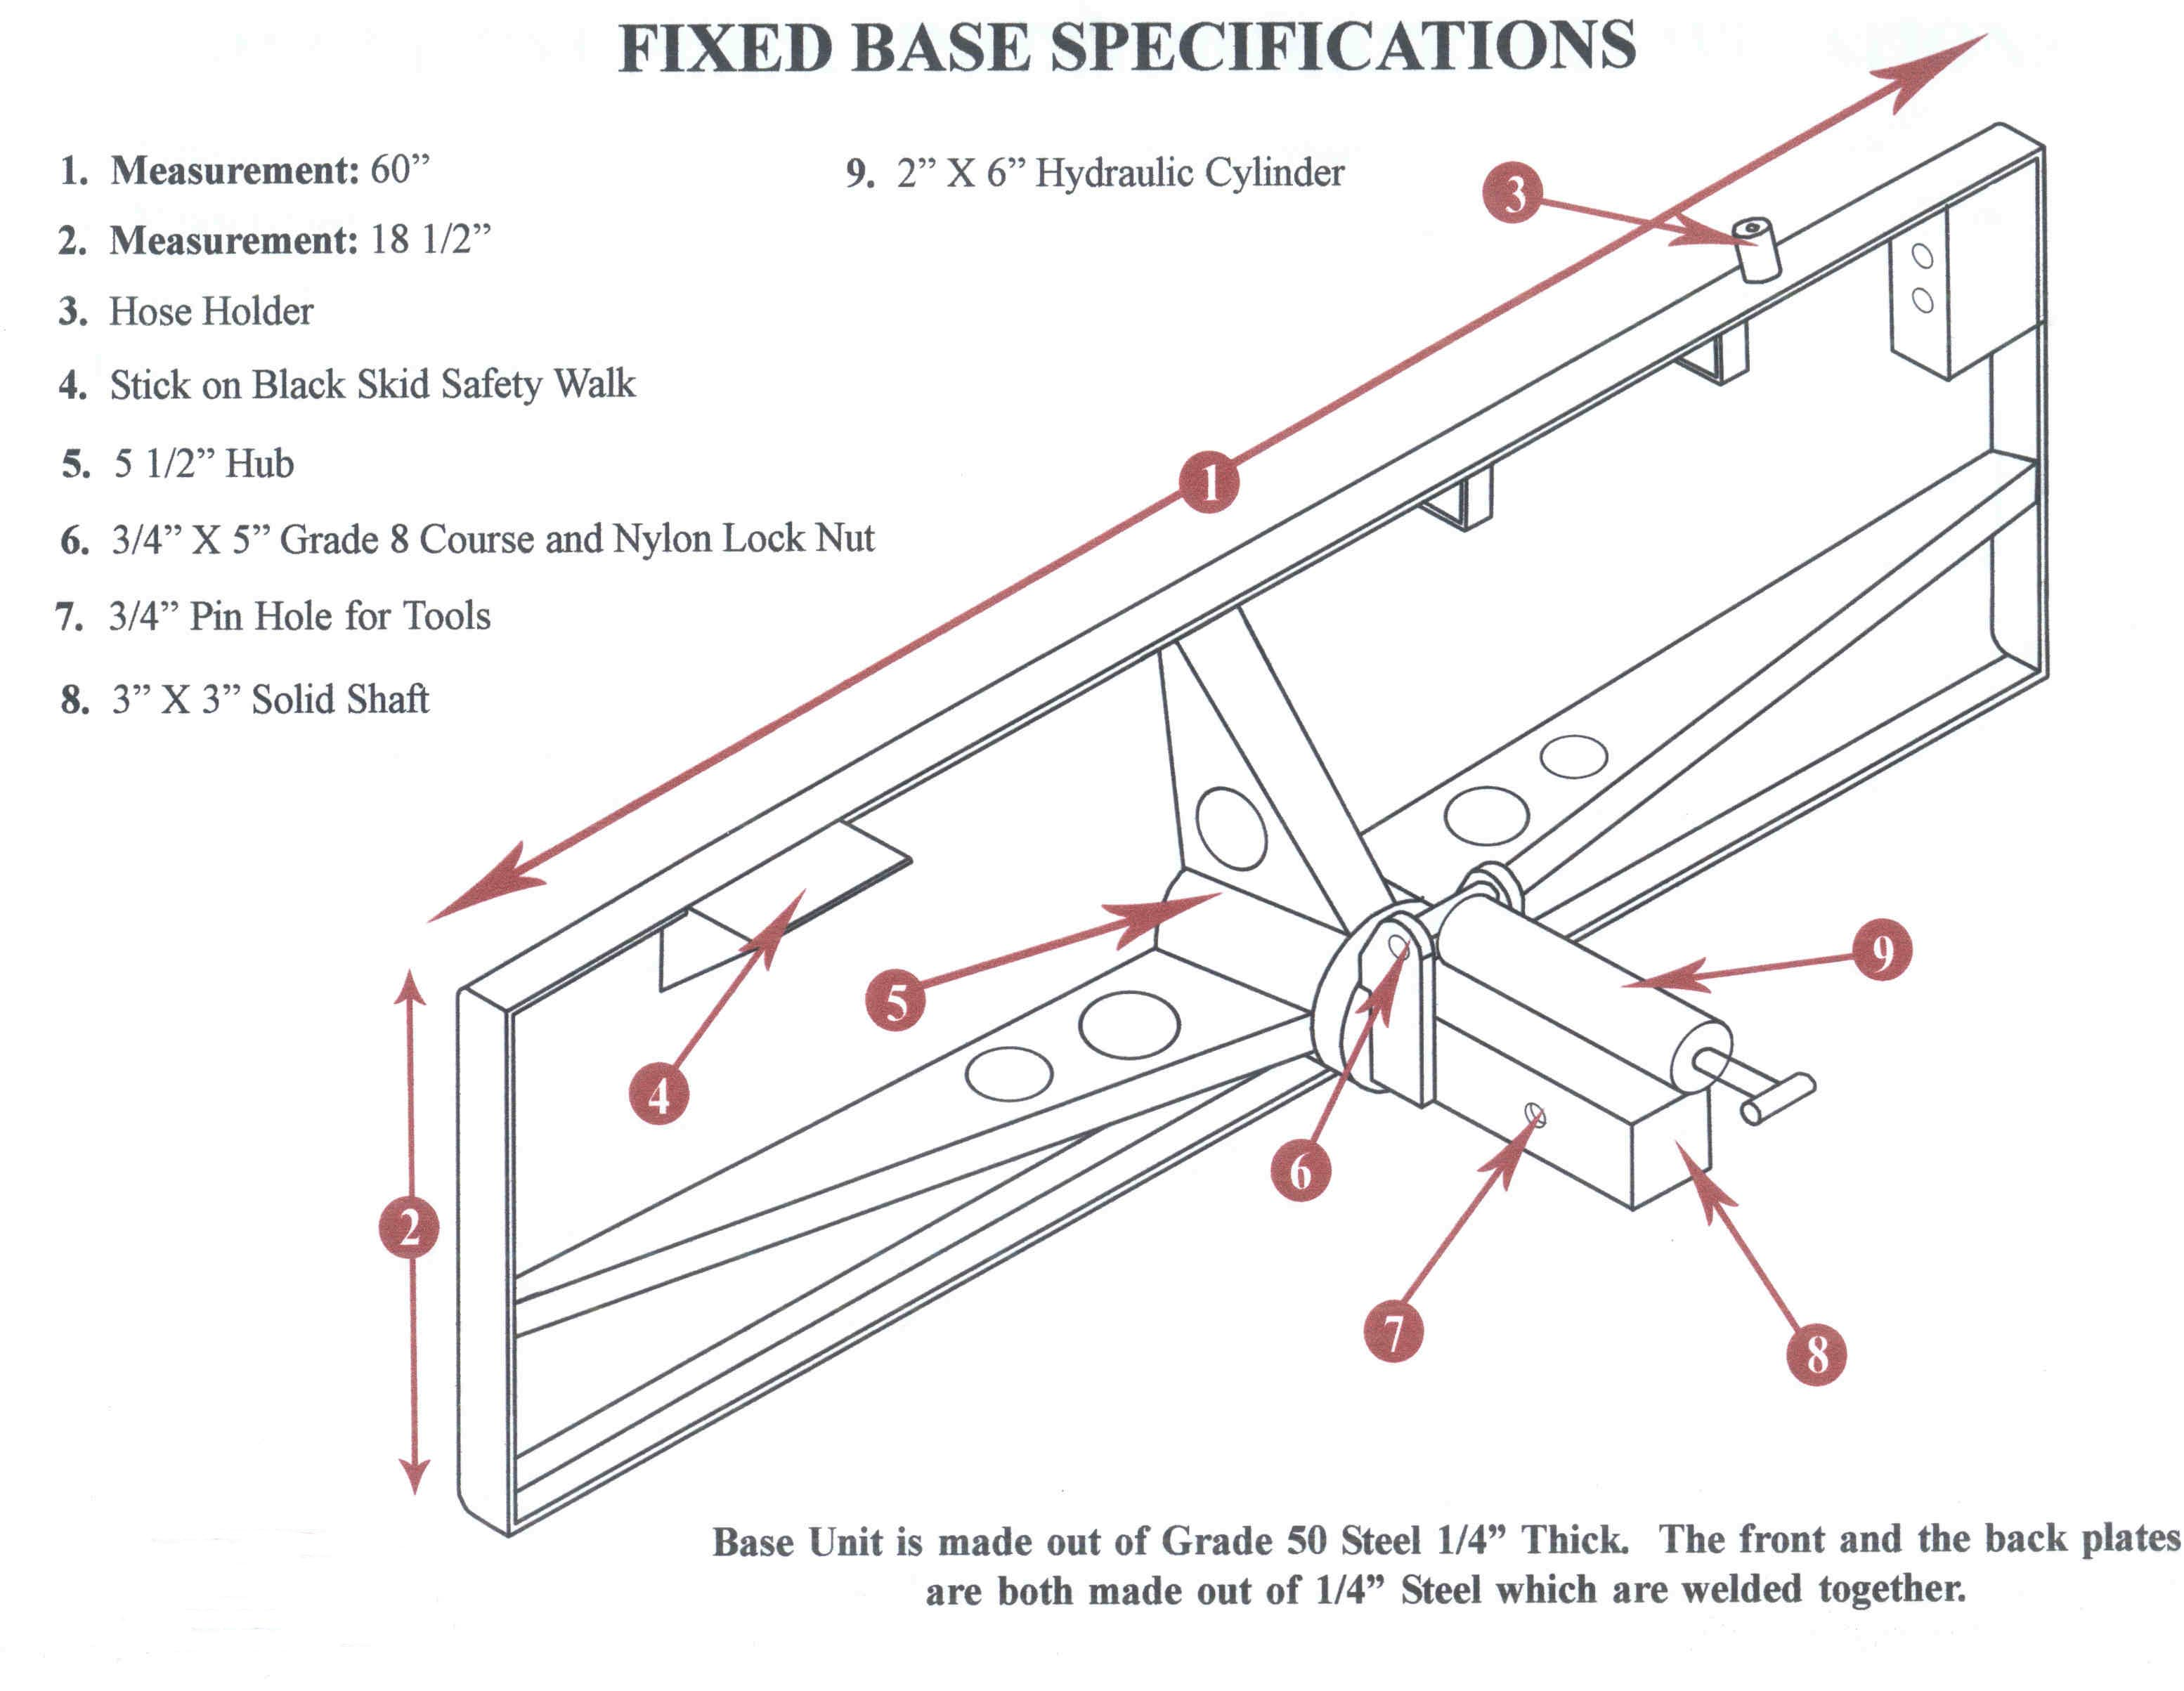 Specifications On Fixed Base Plate